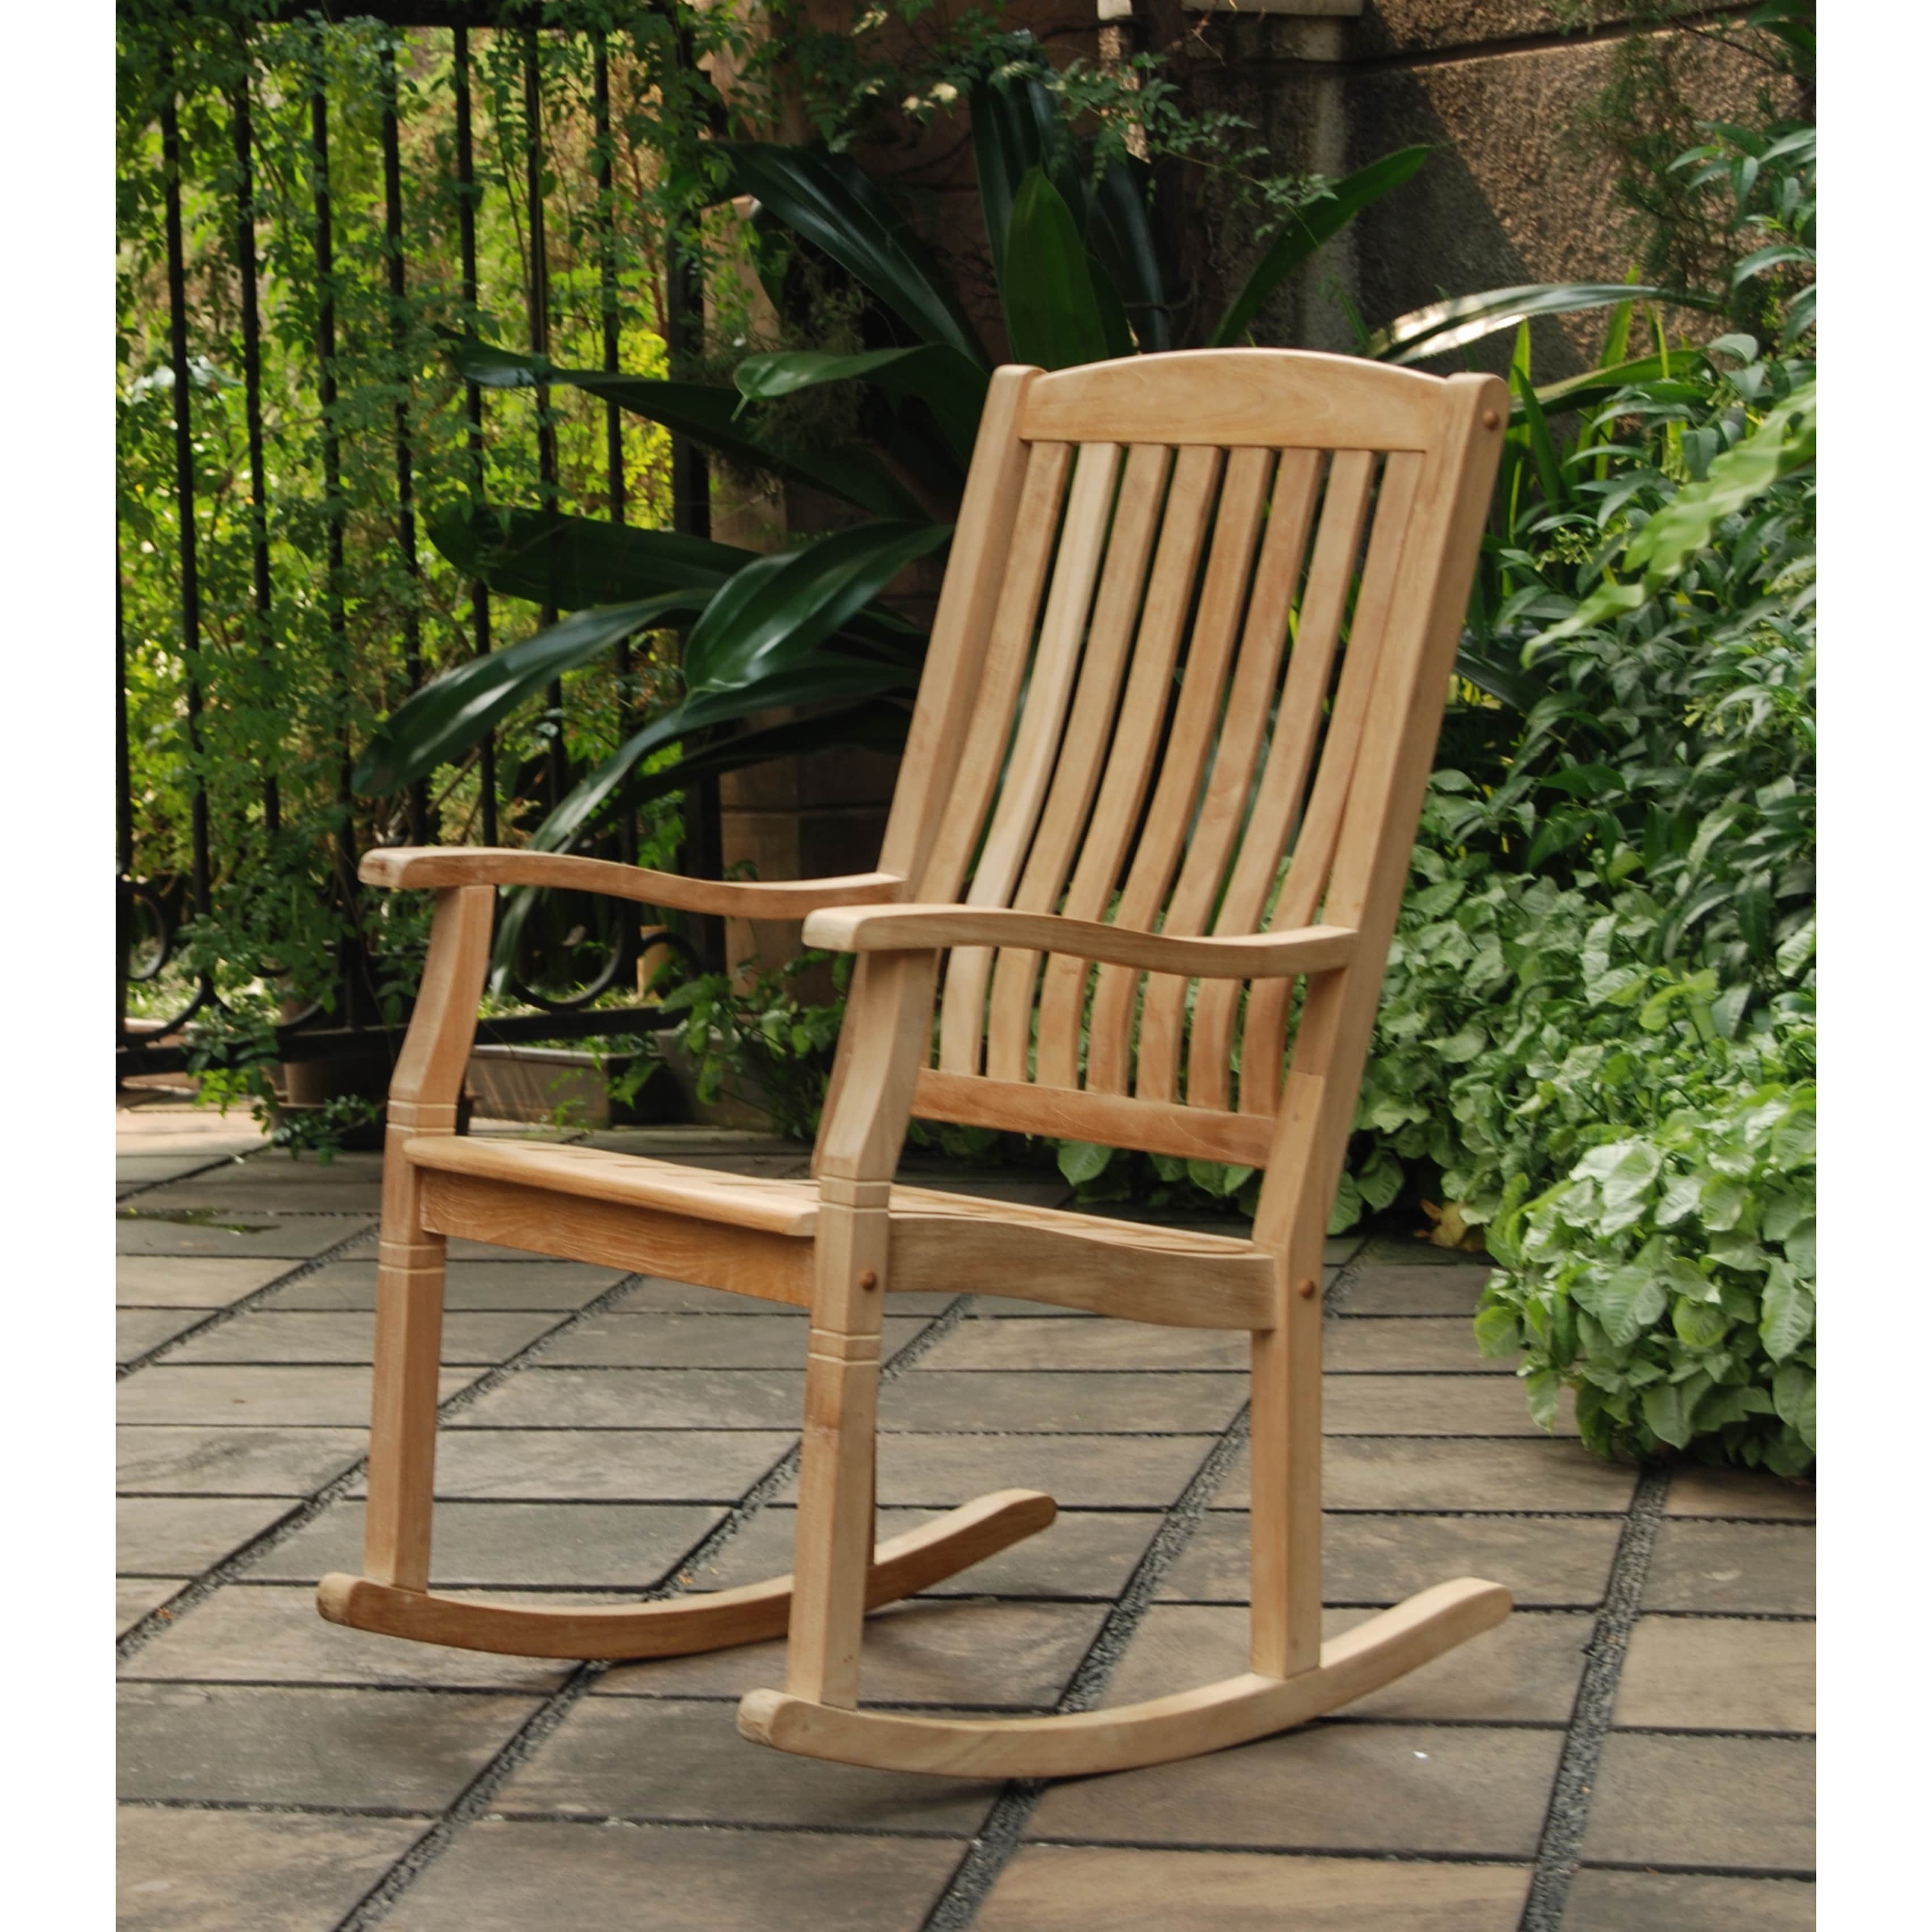 Teak Patio Rocking Chairs In Fashionable Shop Cambridge Casual Sherwood Natural Teak Porch Rocking Chair (View 8 of 20)